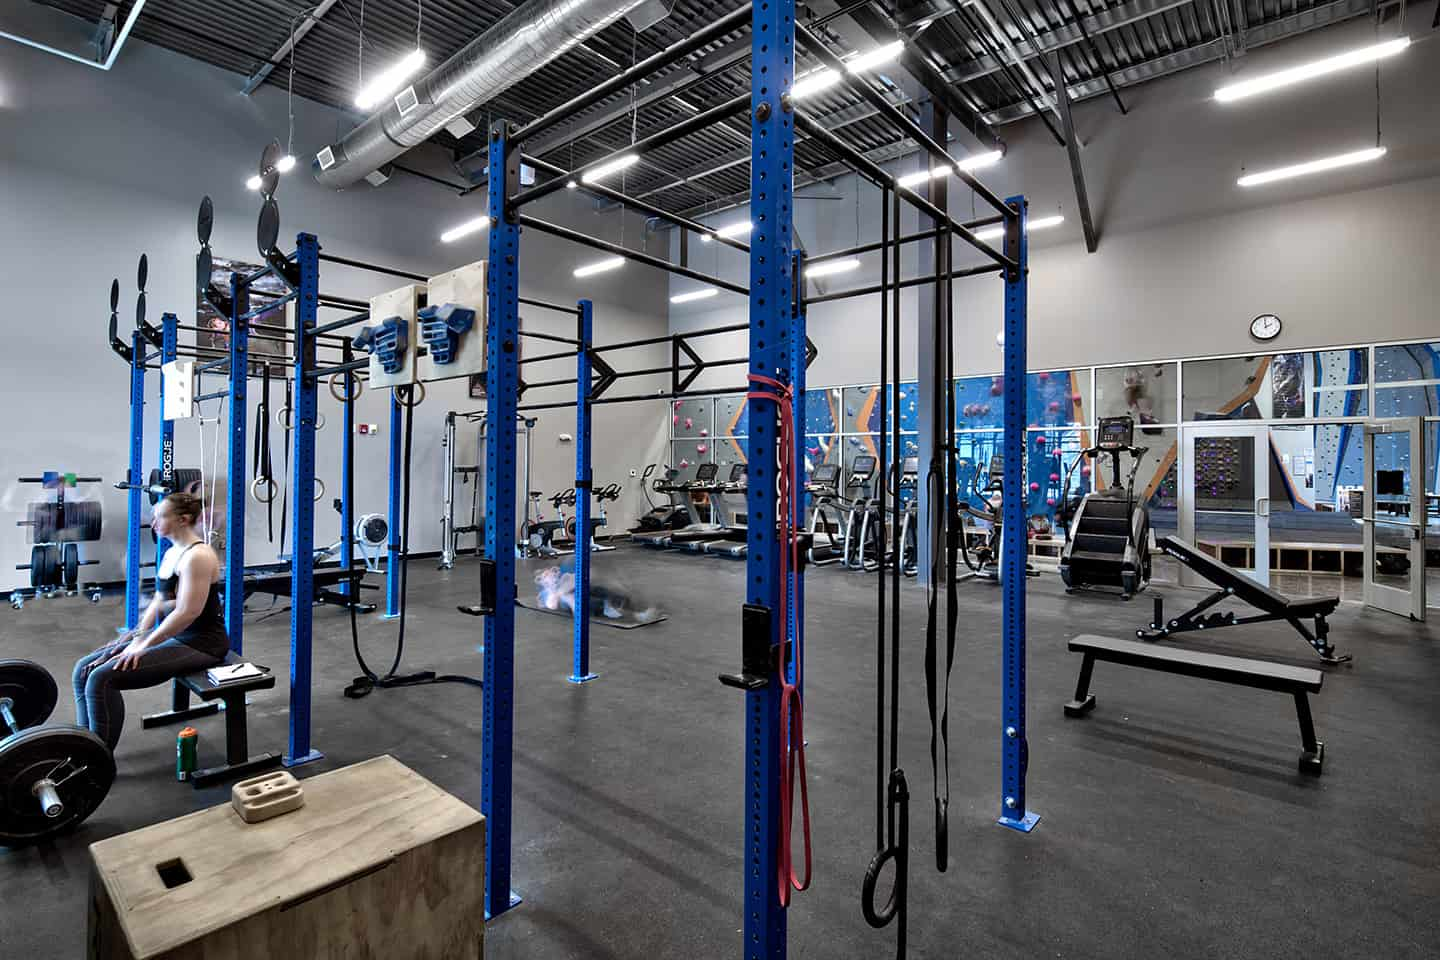 Central Rock Gym